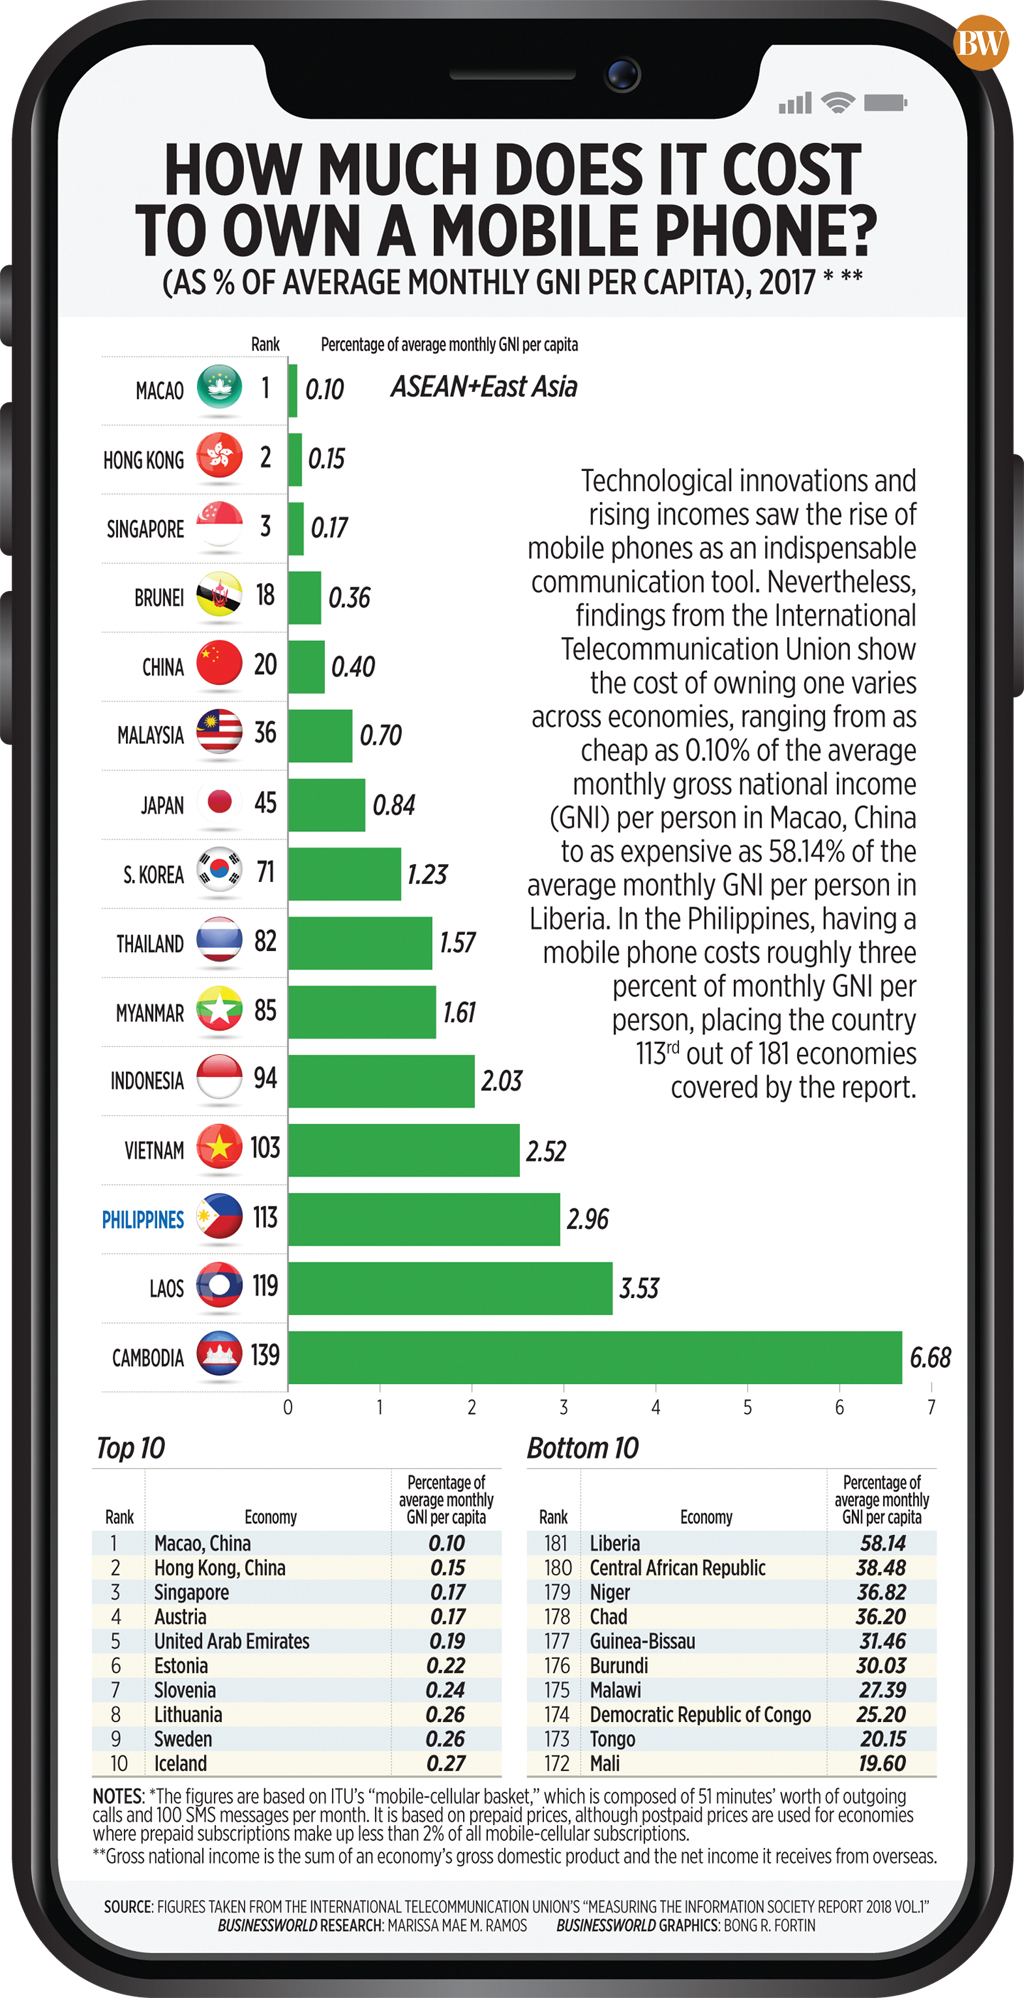 How much does it cost to own a mobile phone?